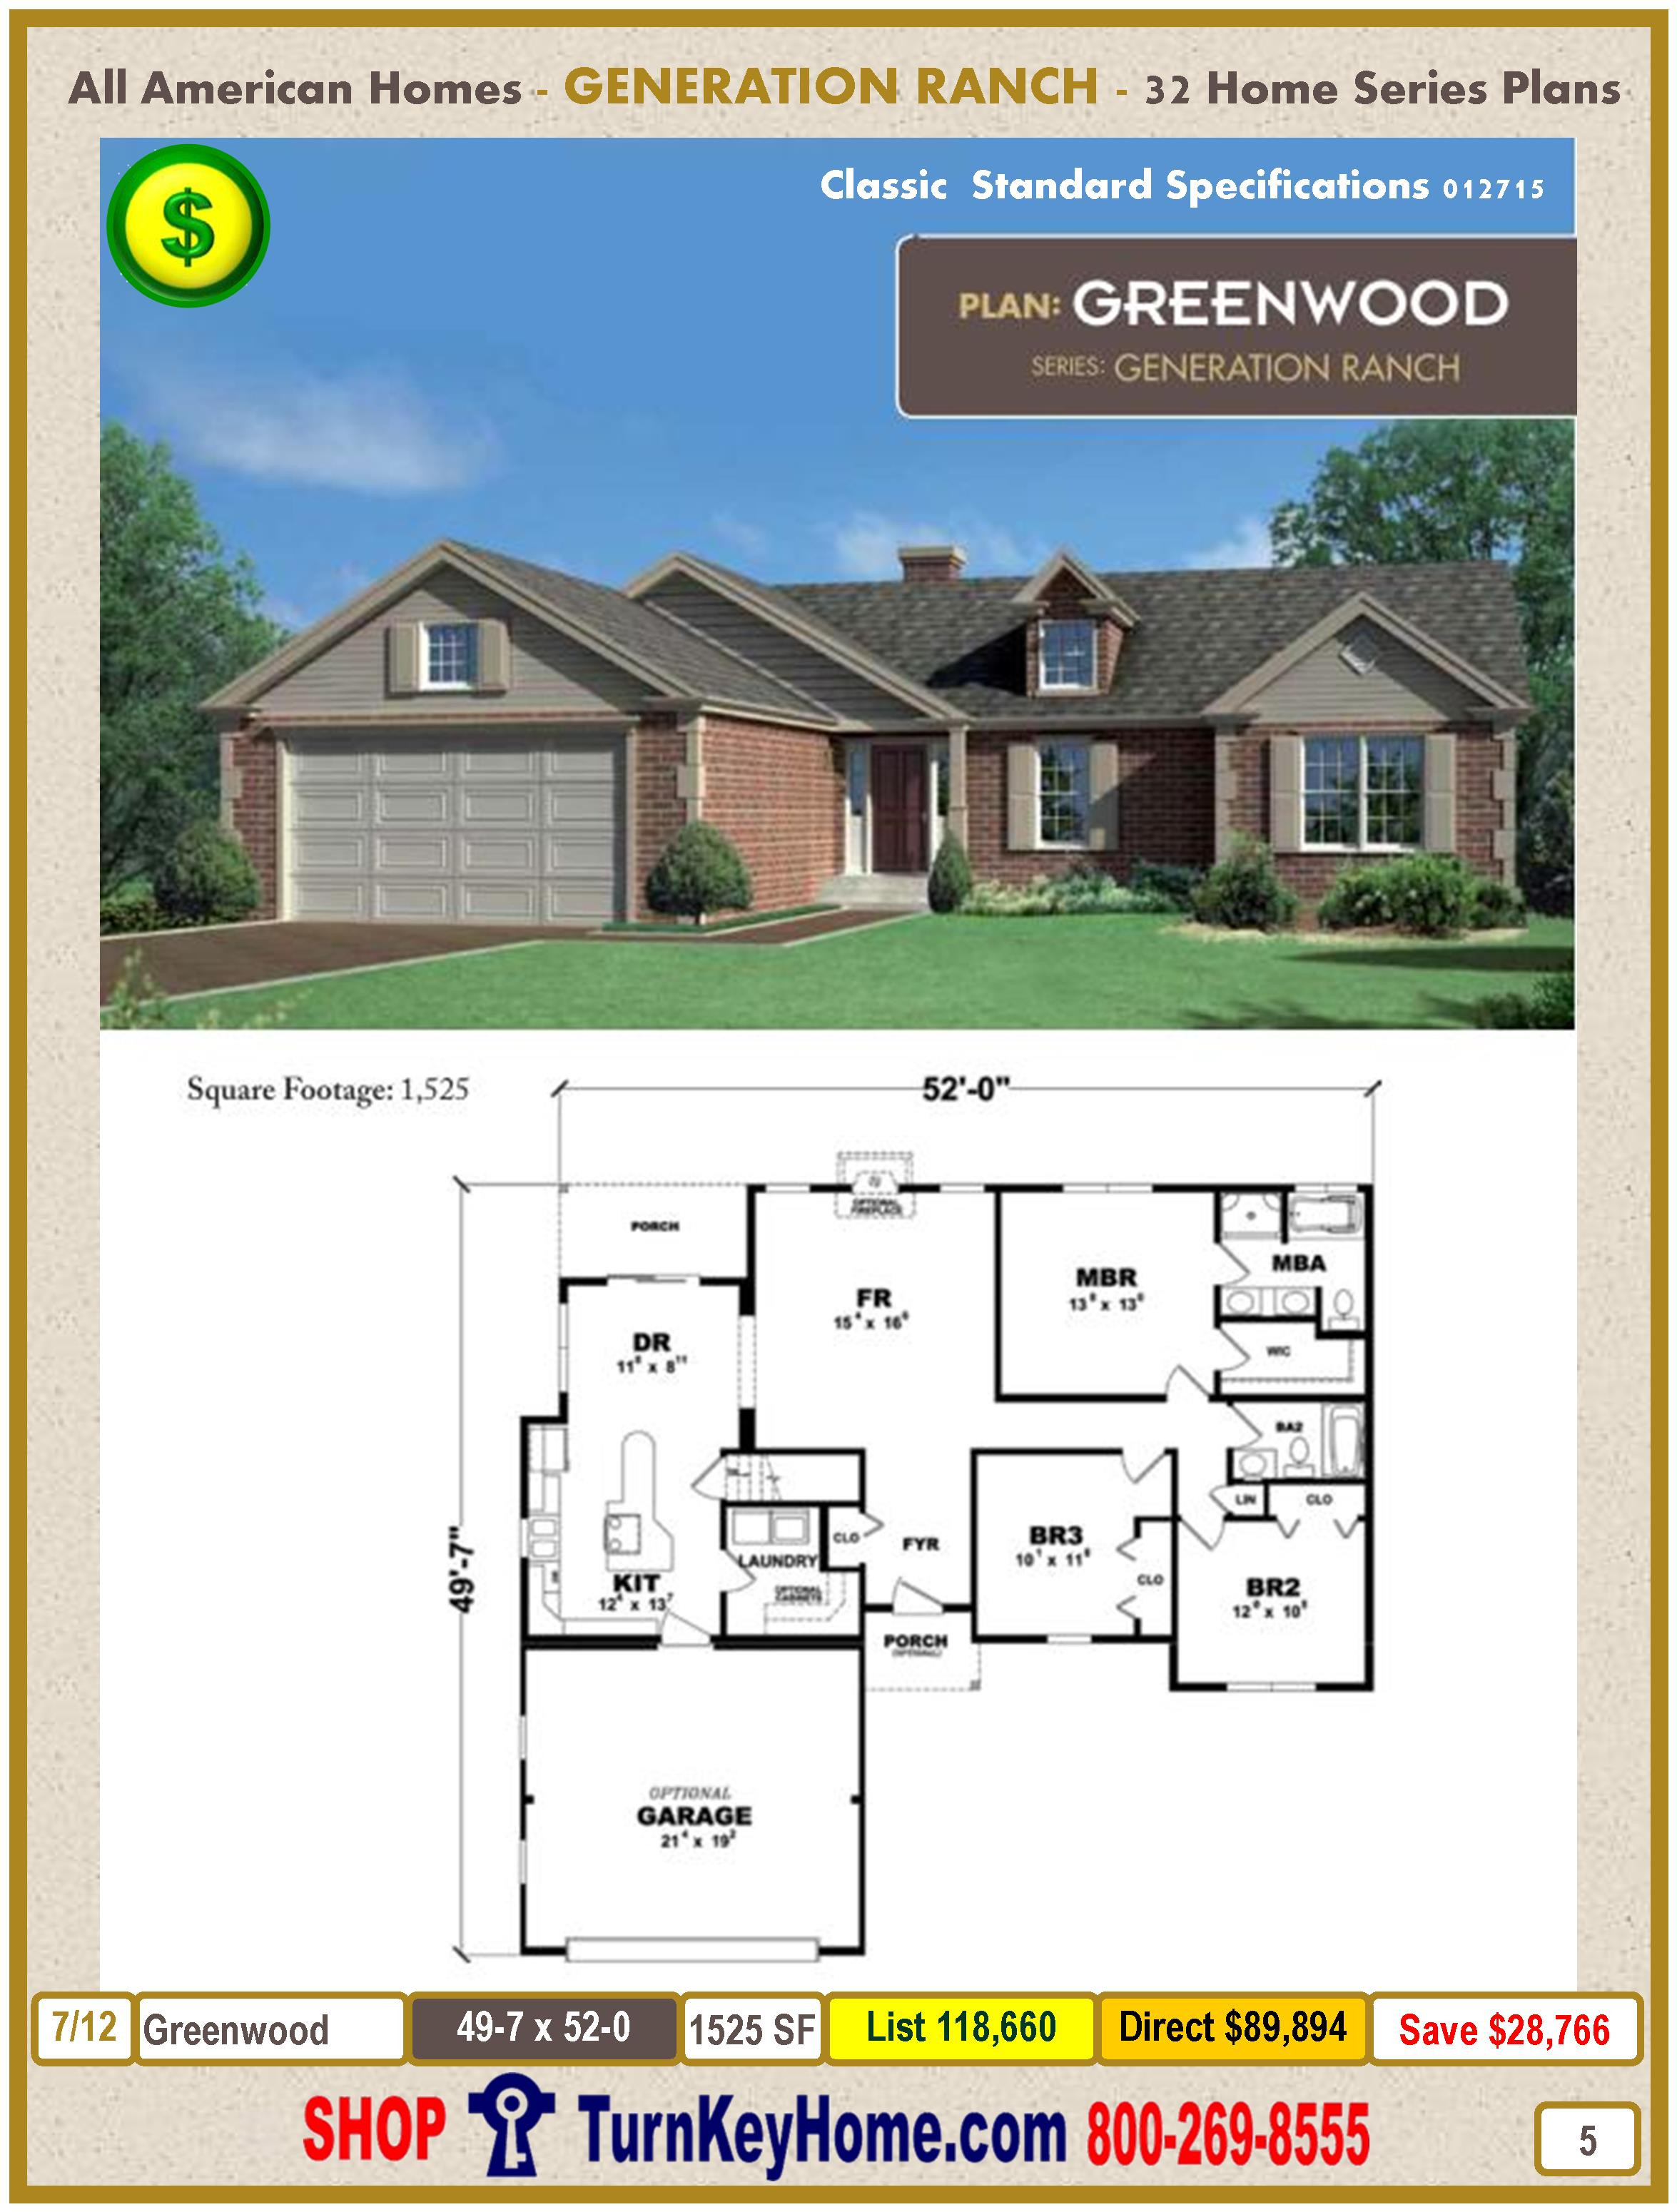 Modular.All.American.Homes.Generation.Ranch.Home.Series.Catalog.Page.5.Greenwood.Direct.Price.021415